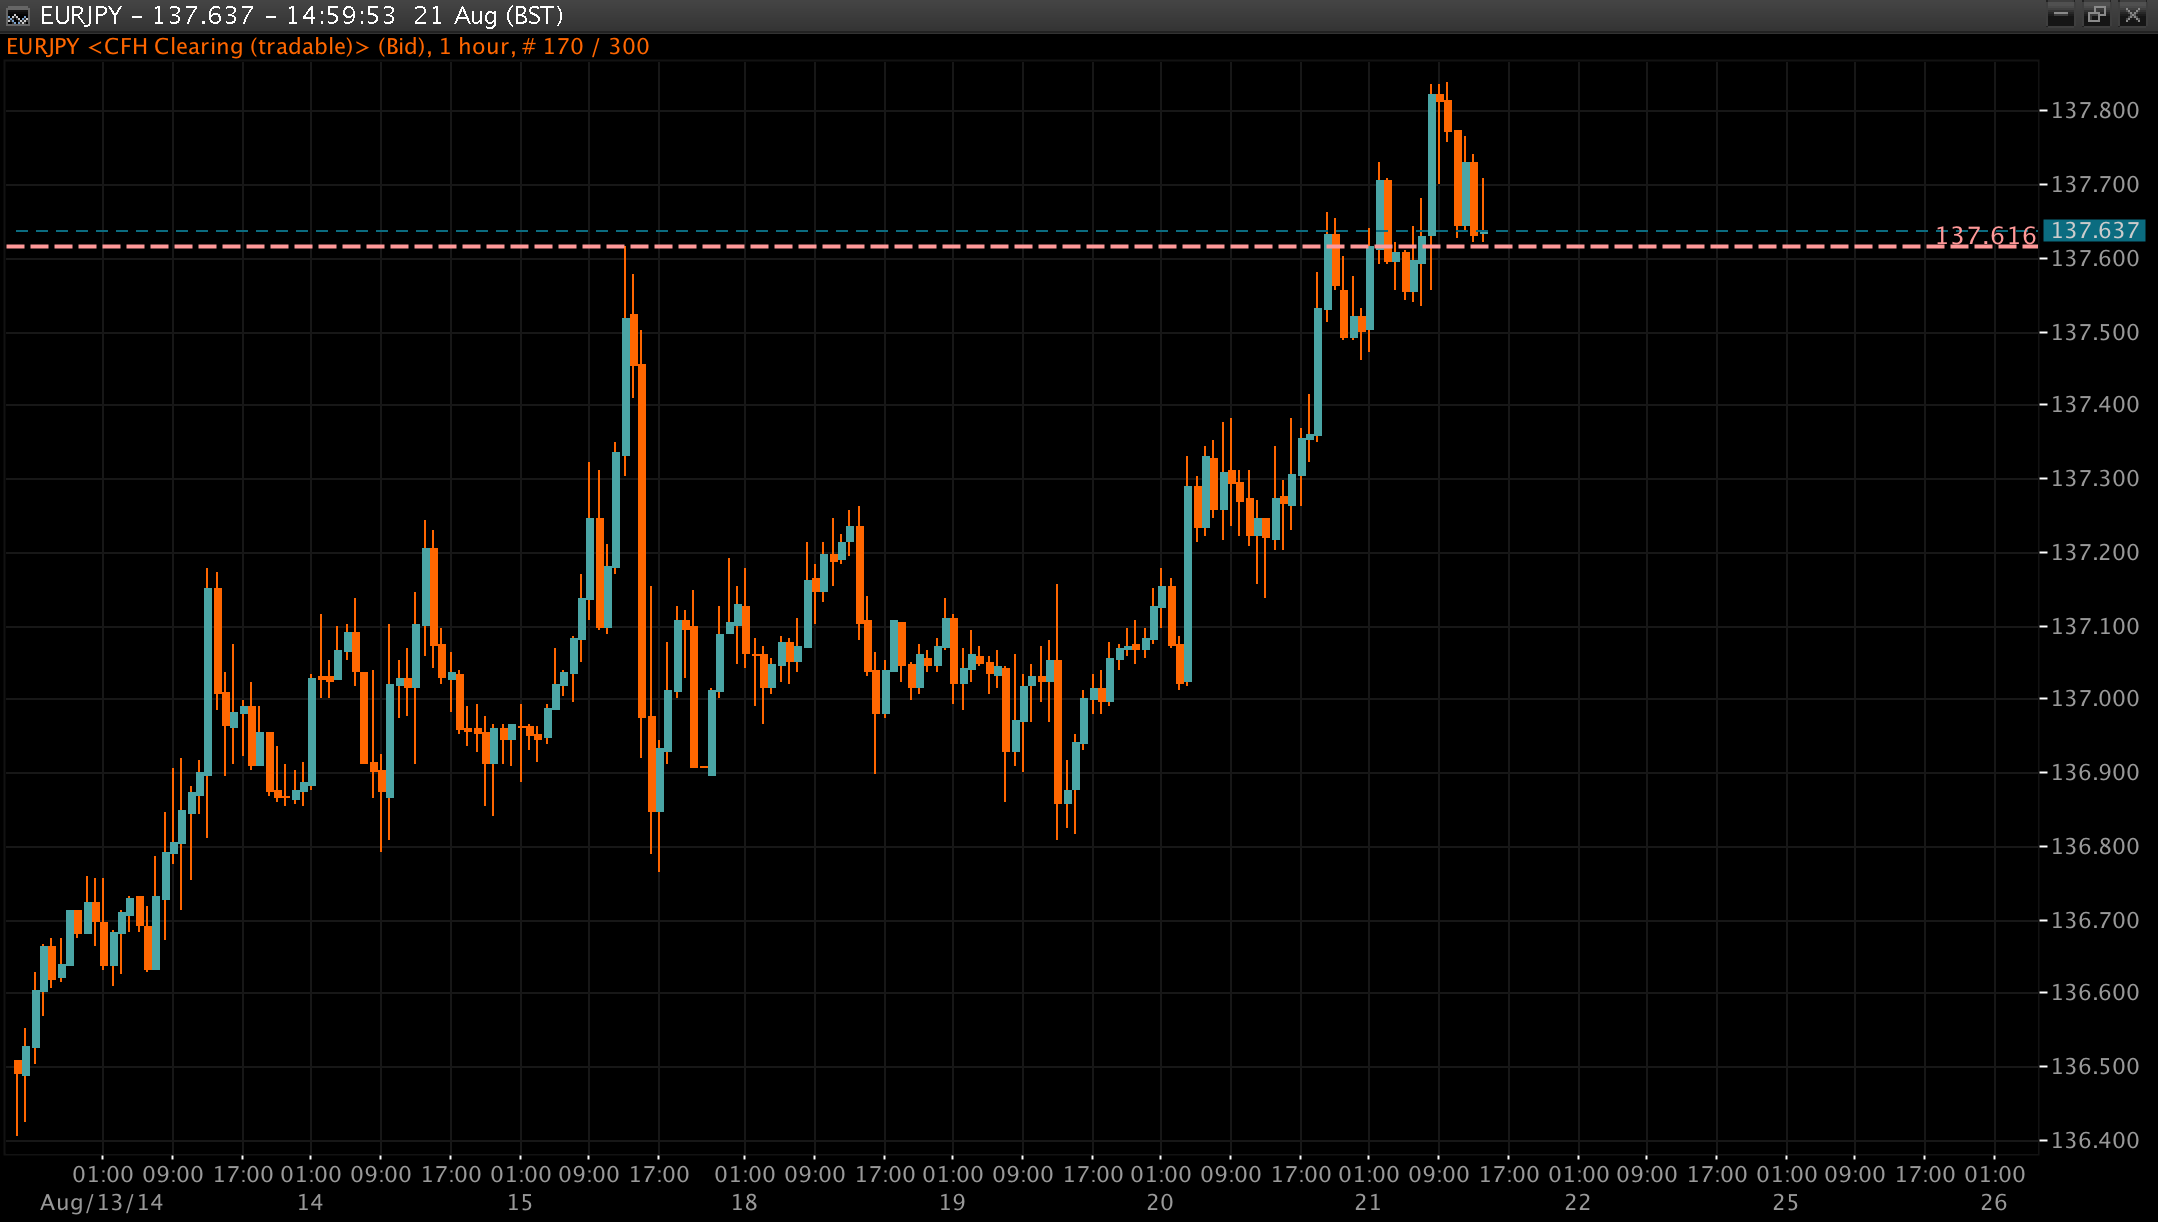 EUR/JPY Chart 21 Aug 2014